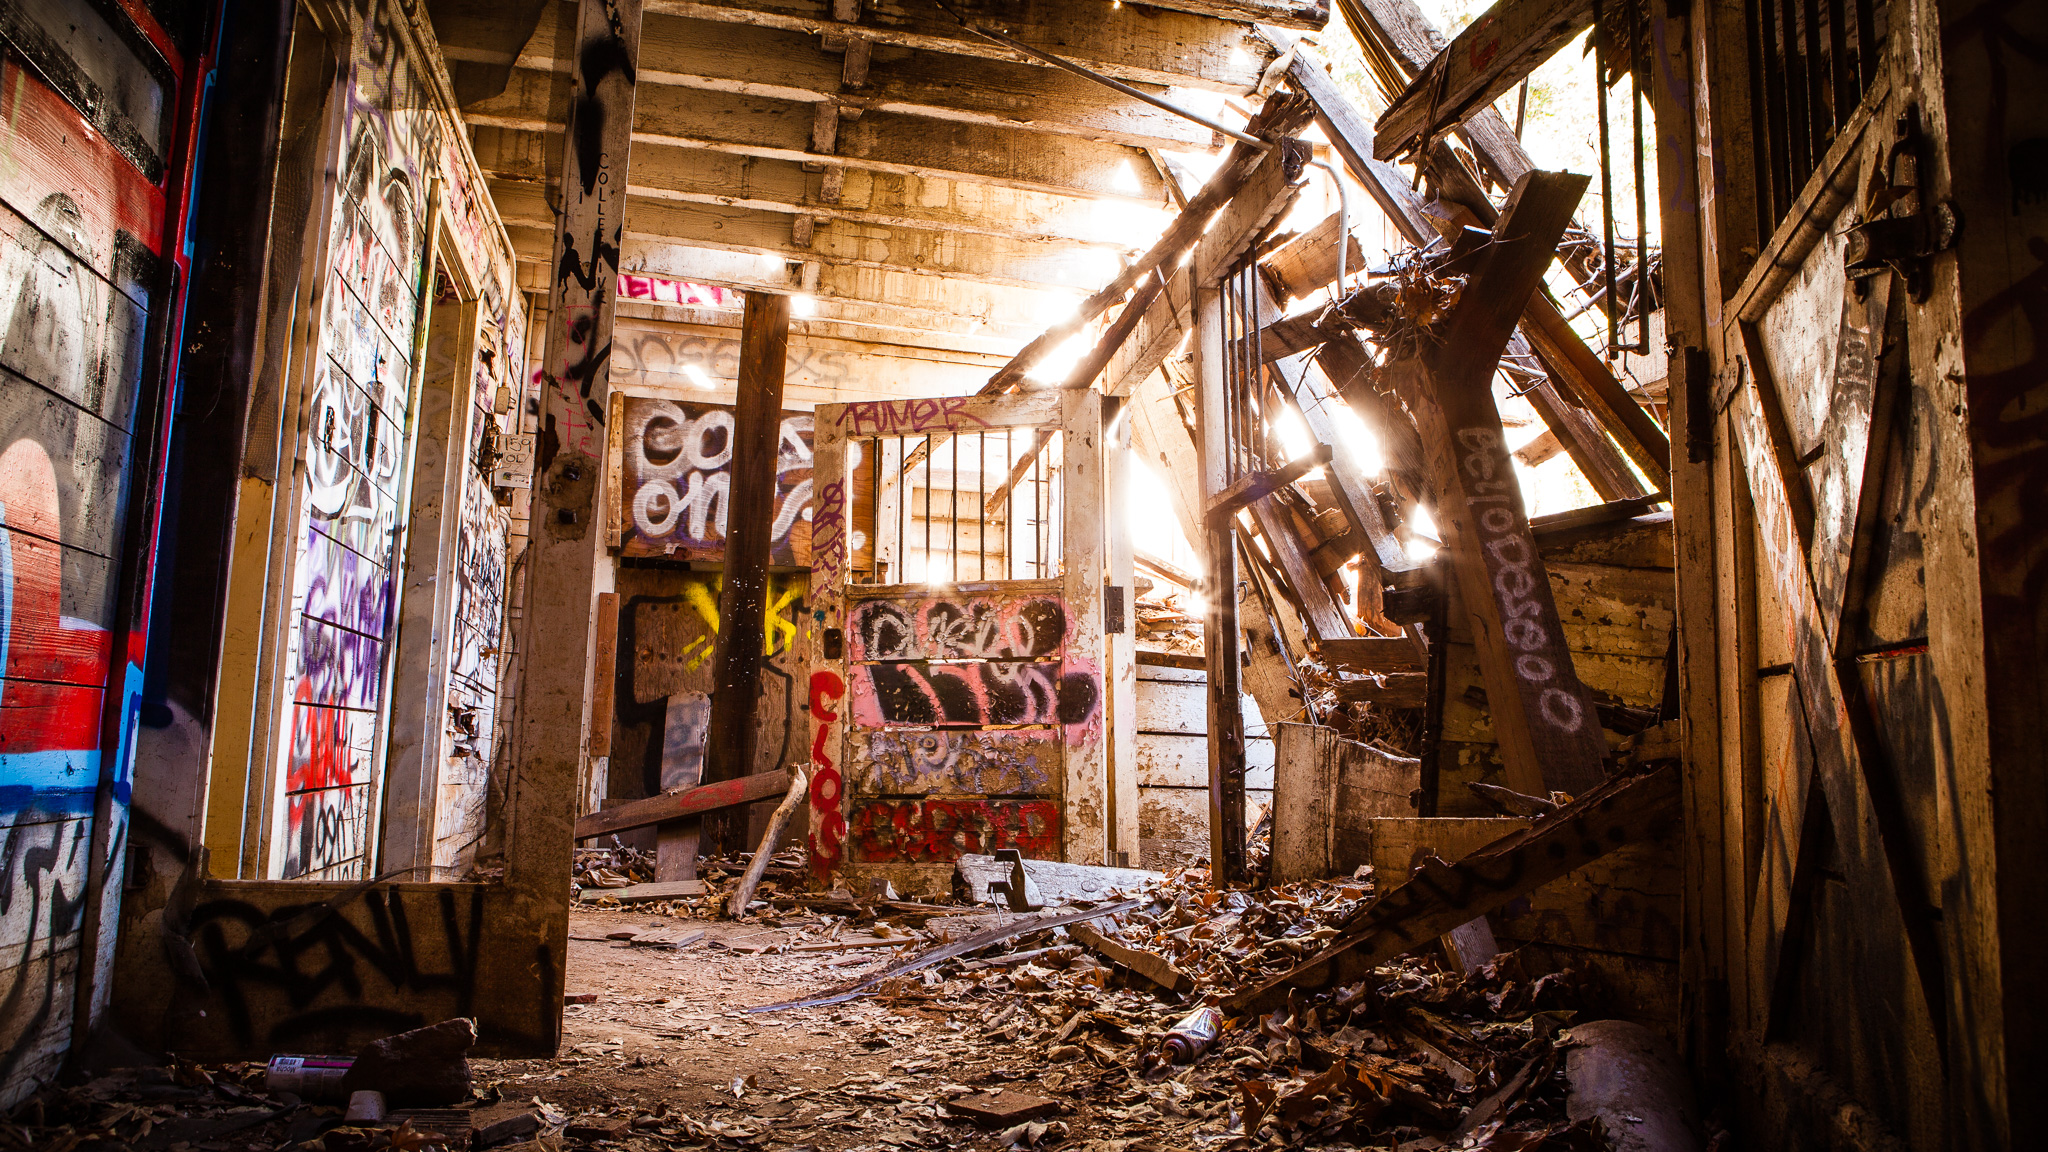 Abandoned Graffitied Barn House In Rustic Canyon, Los Angeles